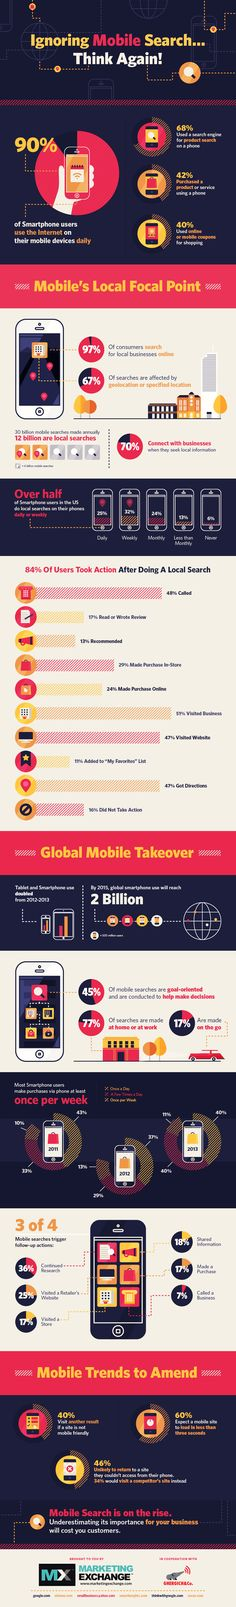 Ignoring Mobile Search… Think Again! [Infographic] image ignoring mobile research